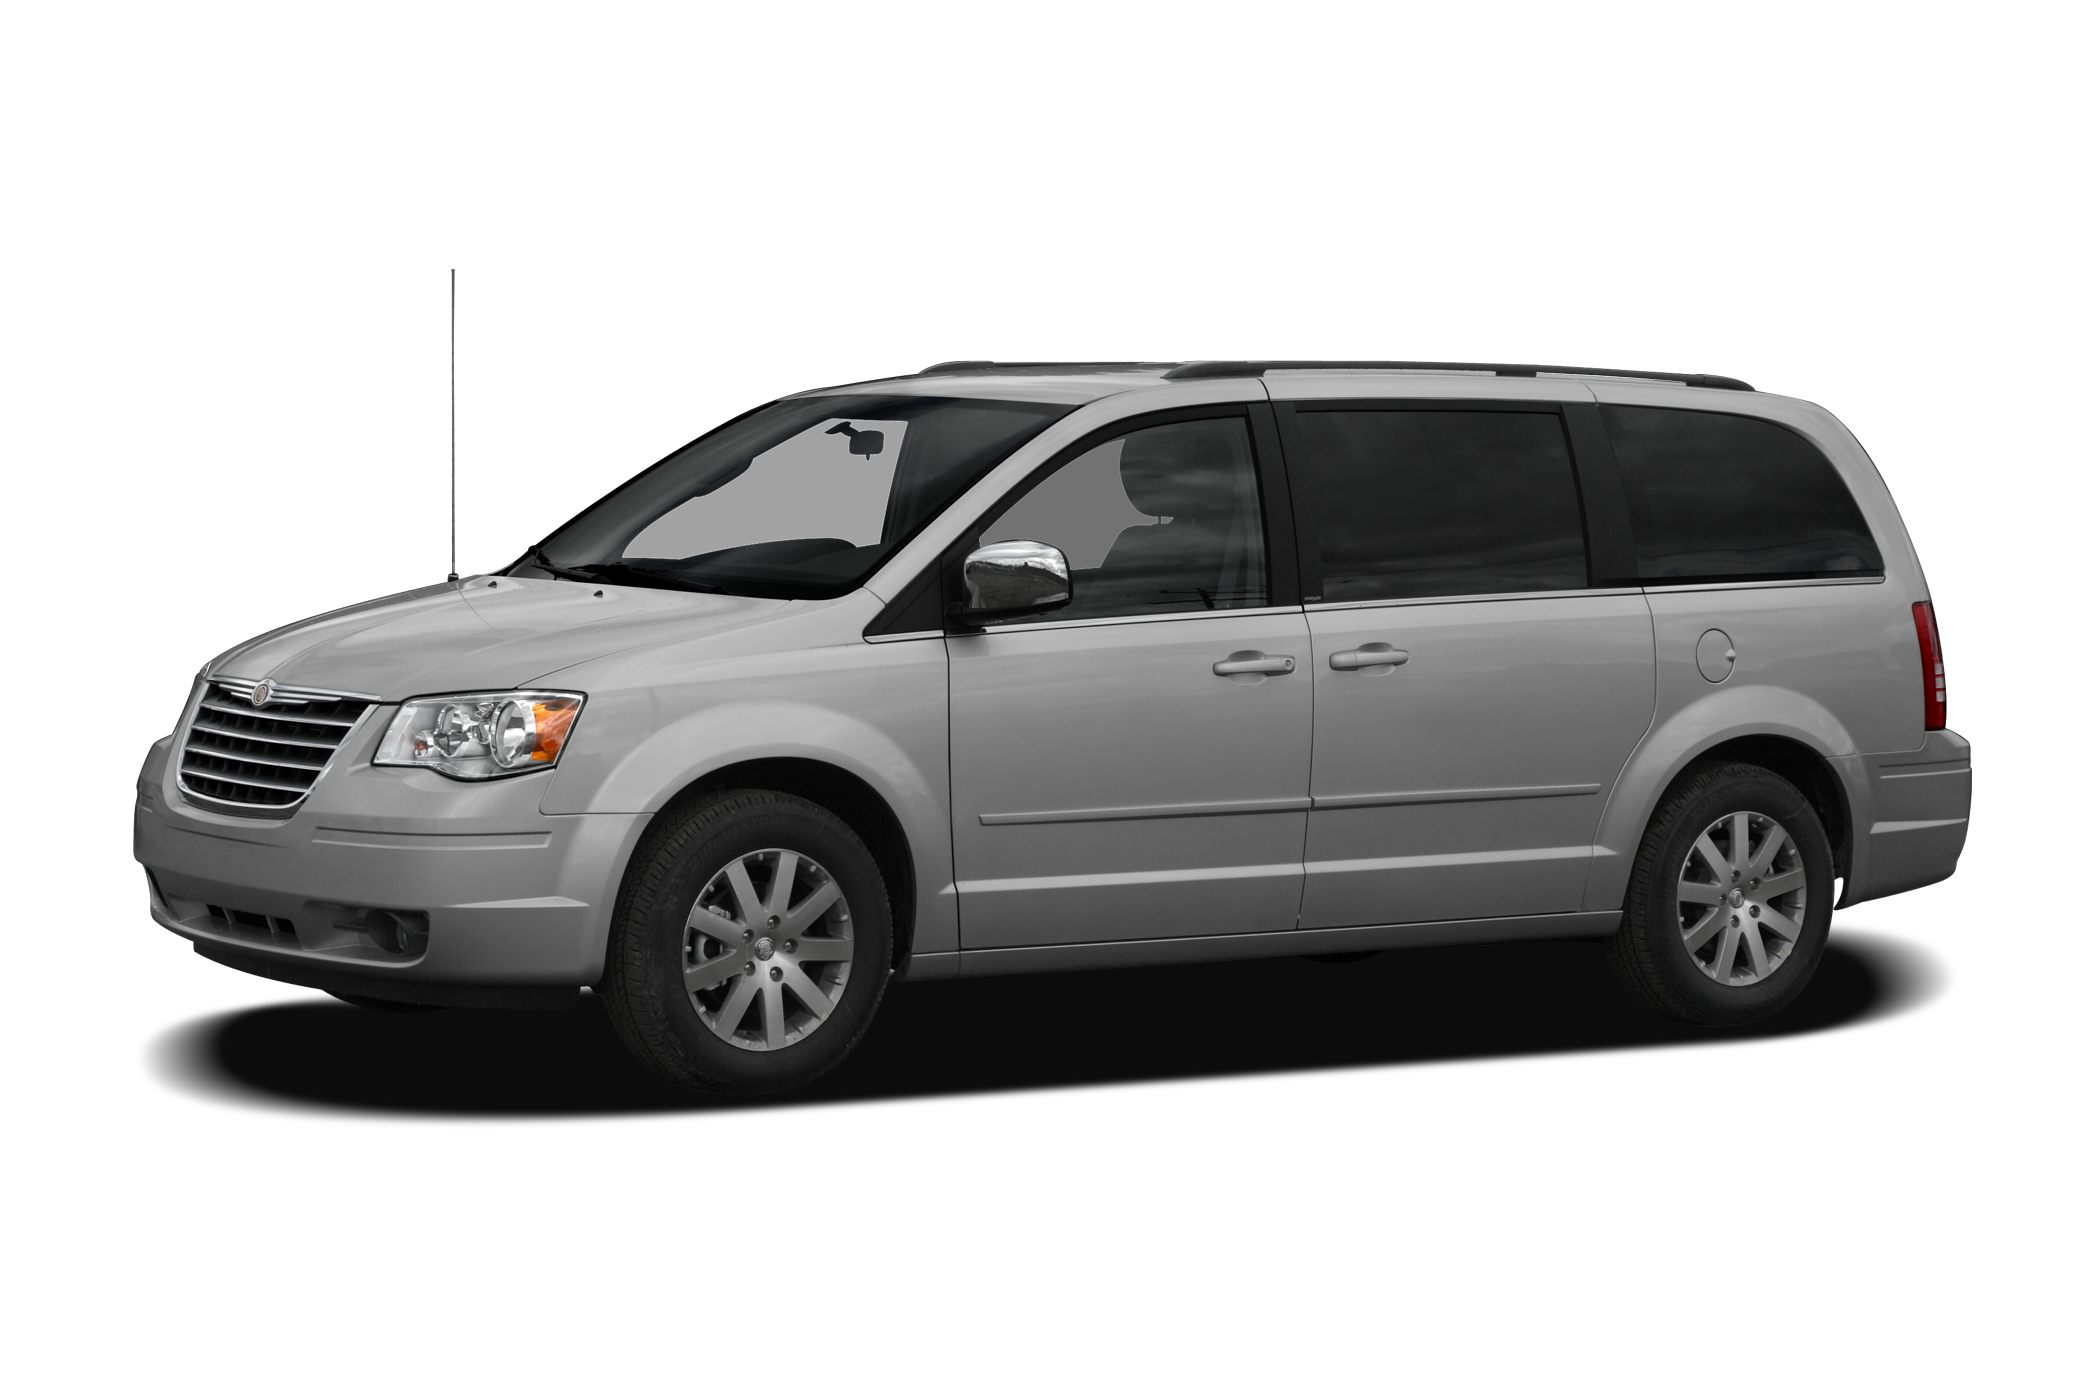 2009 Chrysler Town & Country LX Minivan for sale in Federal Way for $10,991 with 101,628 miles